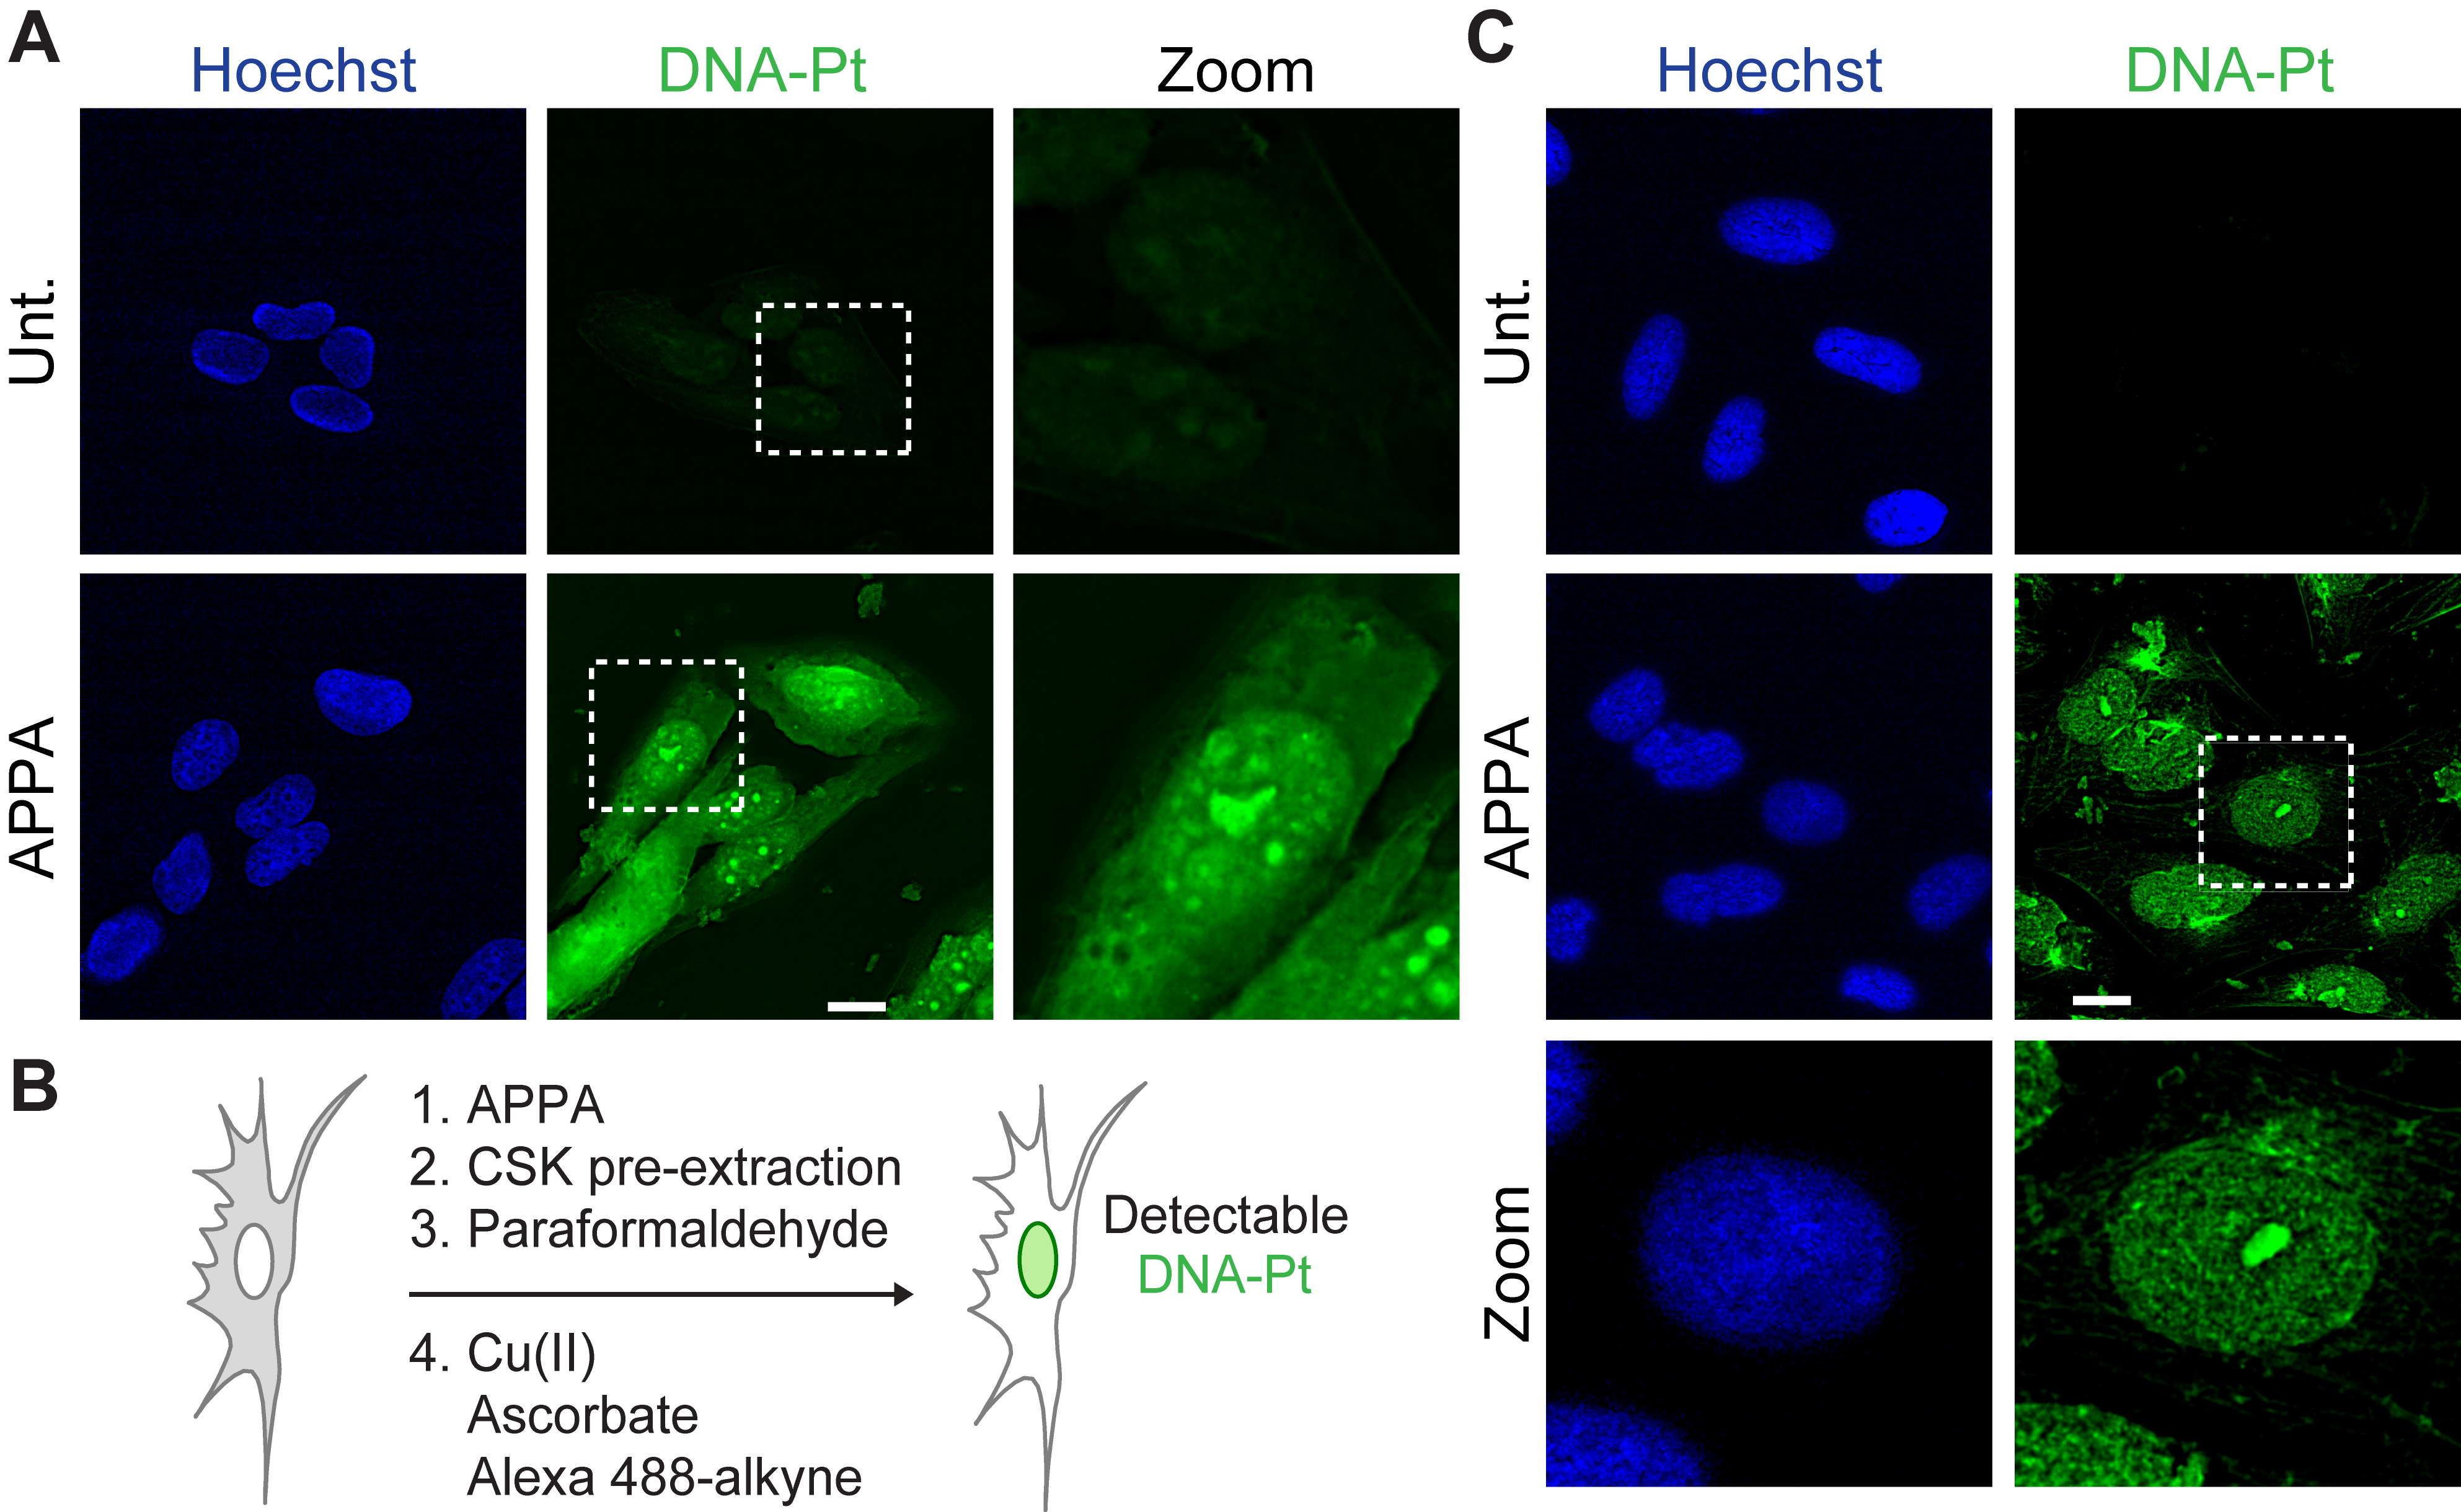 A) Detection of labeled DNA-Pt in U2OS cells. B) Schematic representation of a strategy for enhancing the detection of DNA-Pt in cells. C) Detection of labeled DNA-Pt in U2OS cells subjected to pre-extraction. Cells were treated with APPA (250 mm for 3 h). Zoomed images are 3x . Scale bar, 20 μm. Unt., untreated.